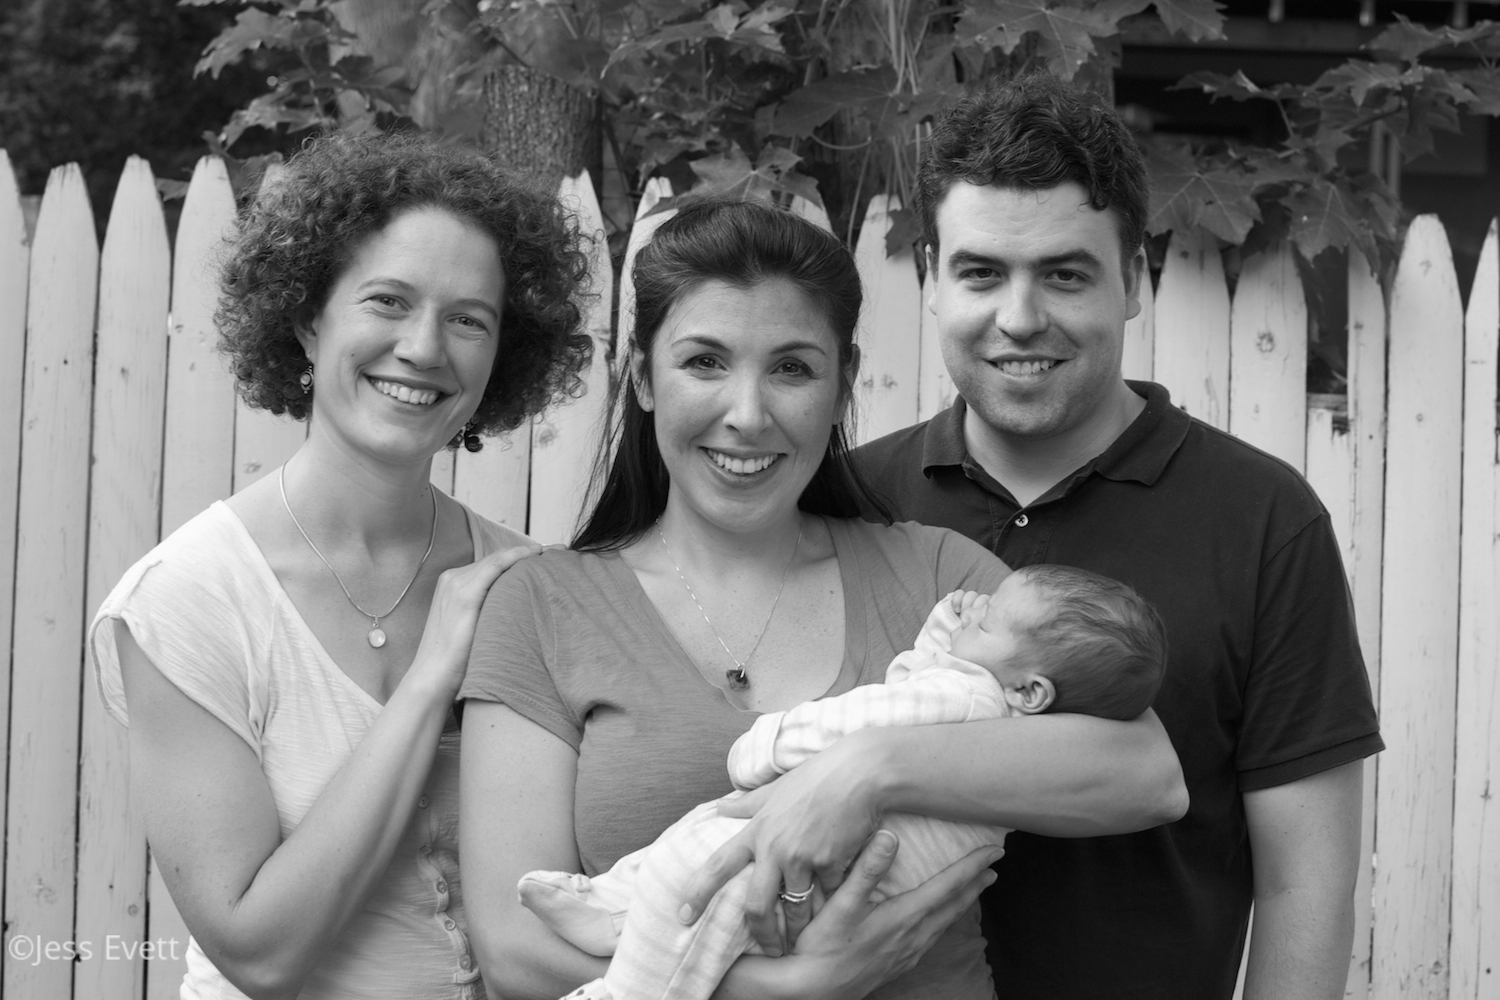 Jess Evett, postpartum doula, supports families with newborn care in Ithaca, NY.